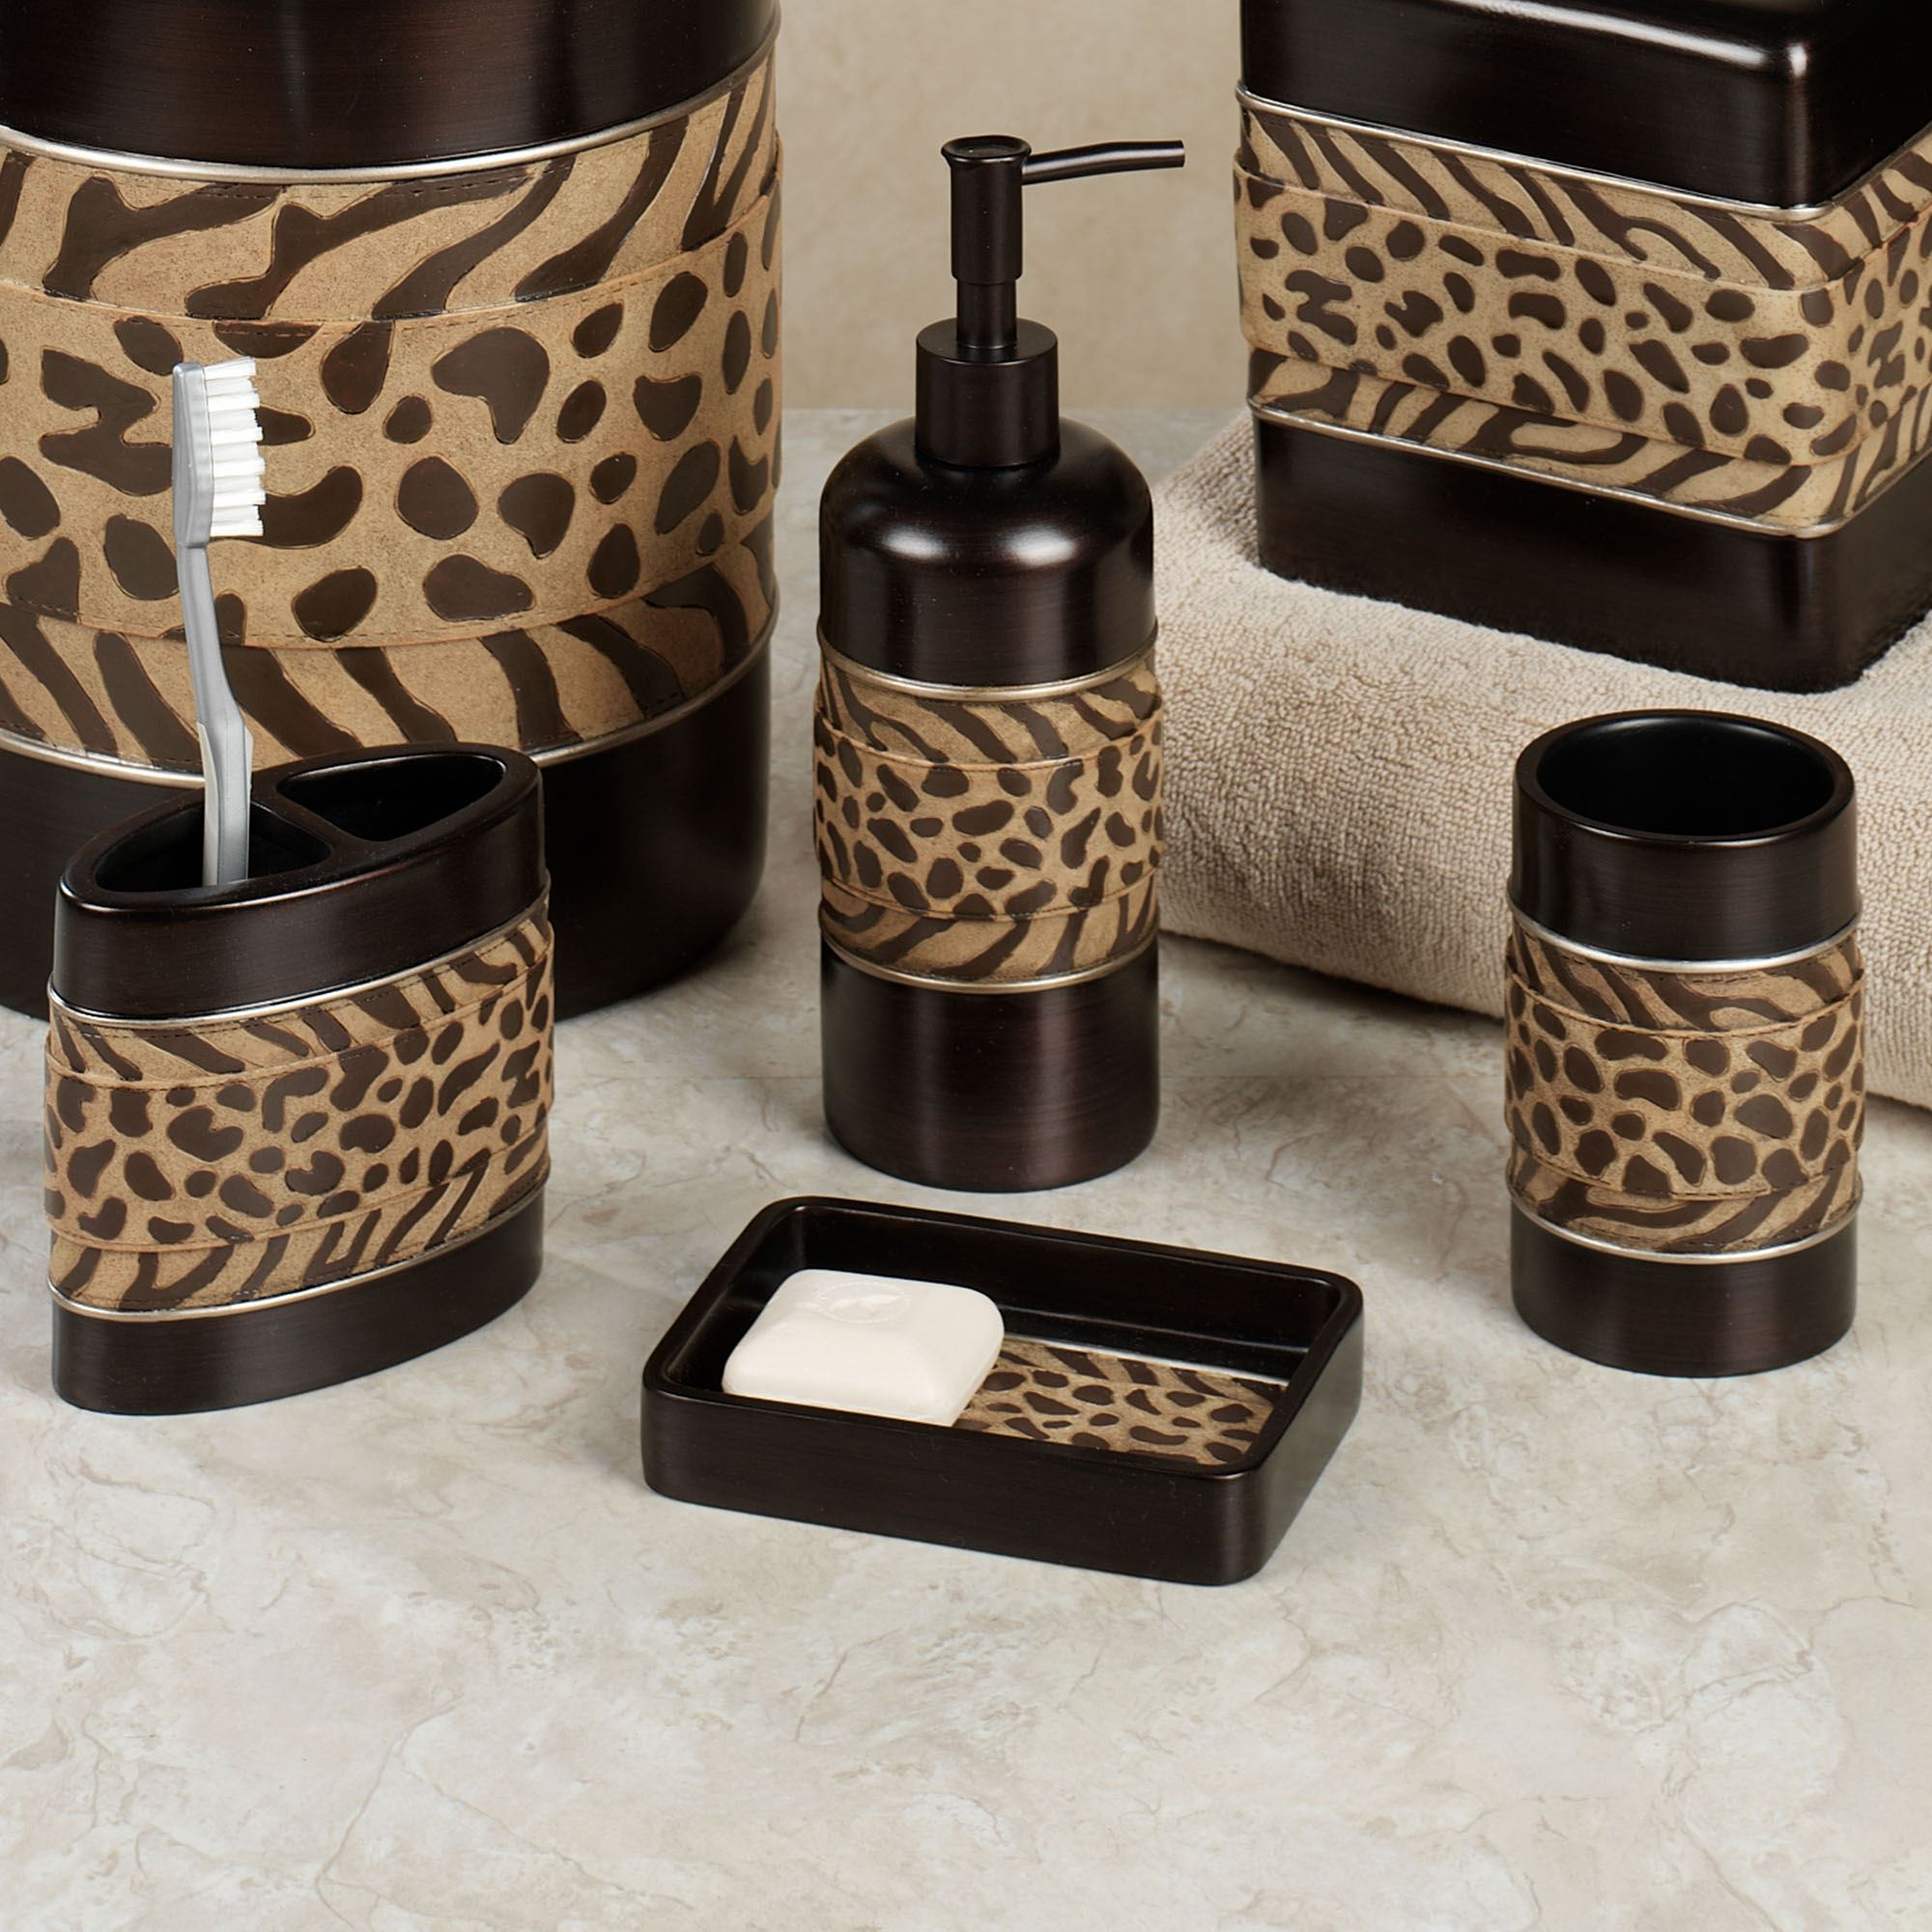 Merveilleux Cheshire Animal Print Bath Accessories. Cheshire Lotion Soap Dispenser  Brown. Touch To Zoom